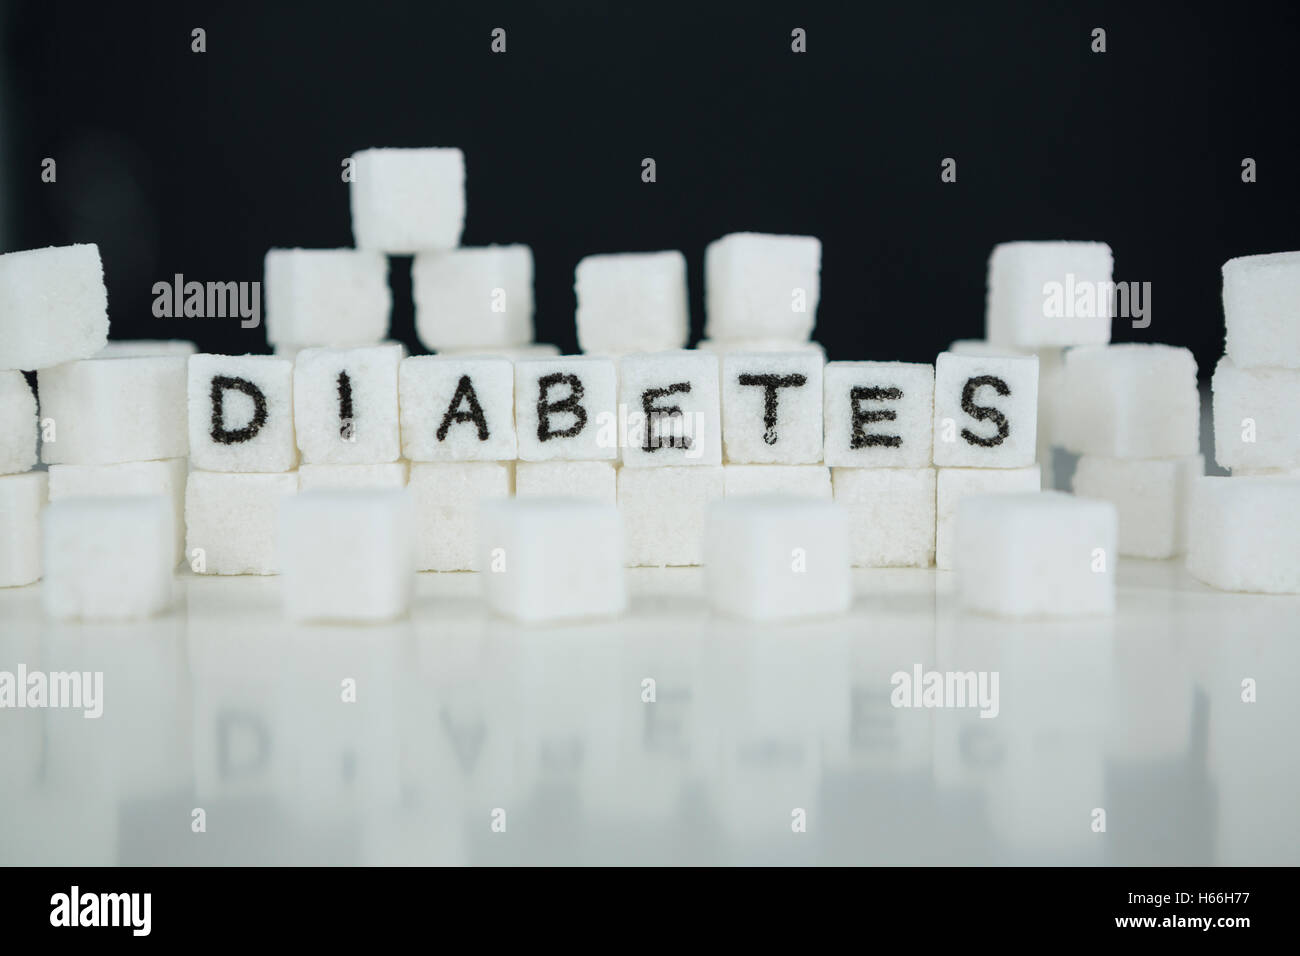 Sugar cubes spelling out diabetes - Stock Image